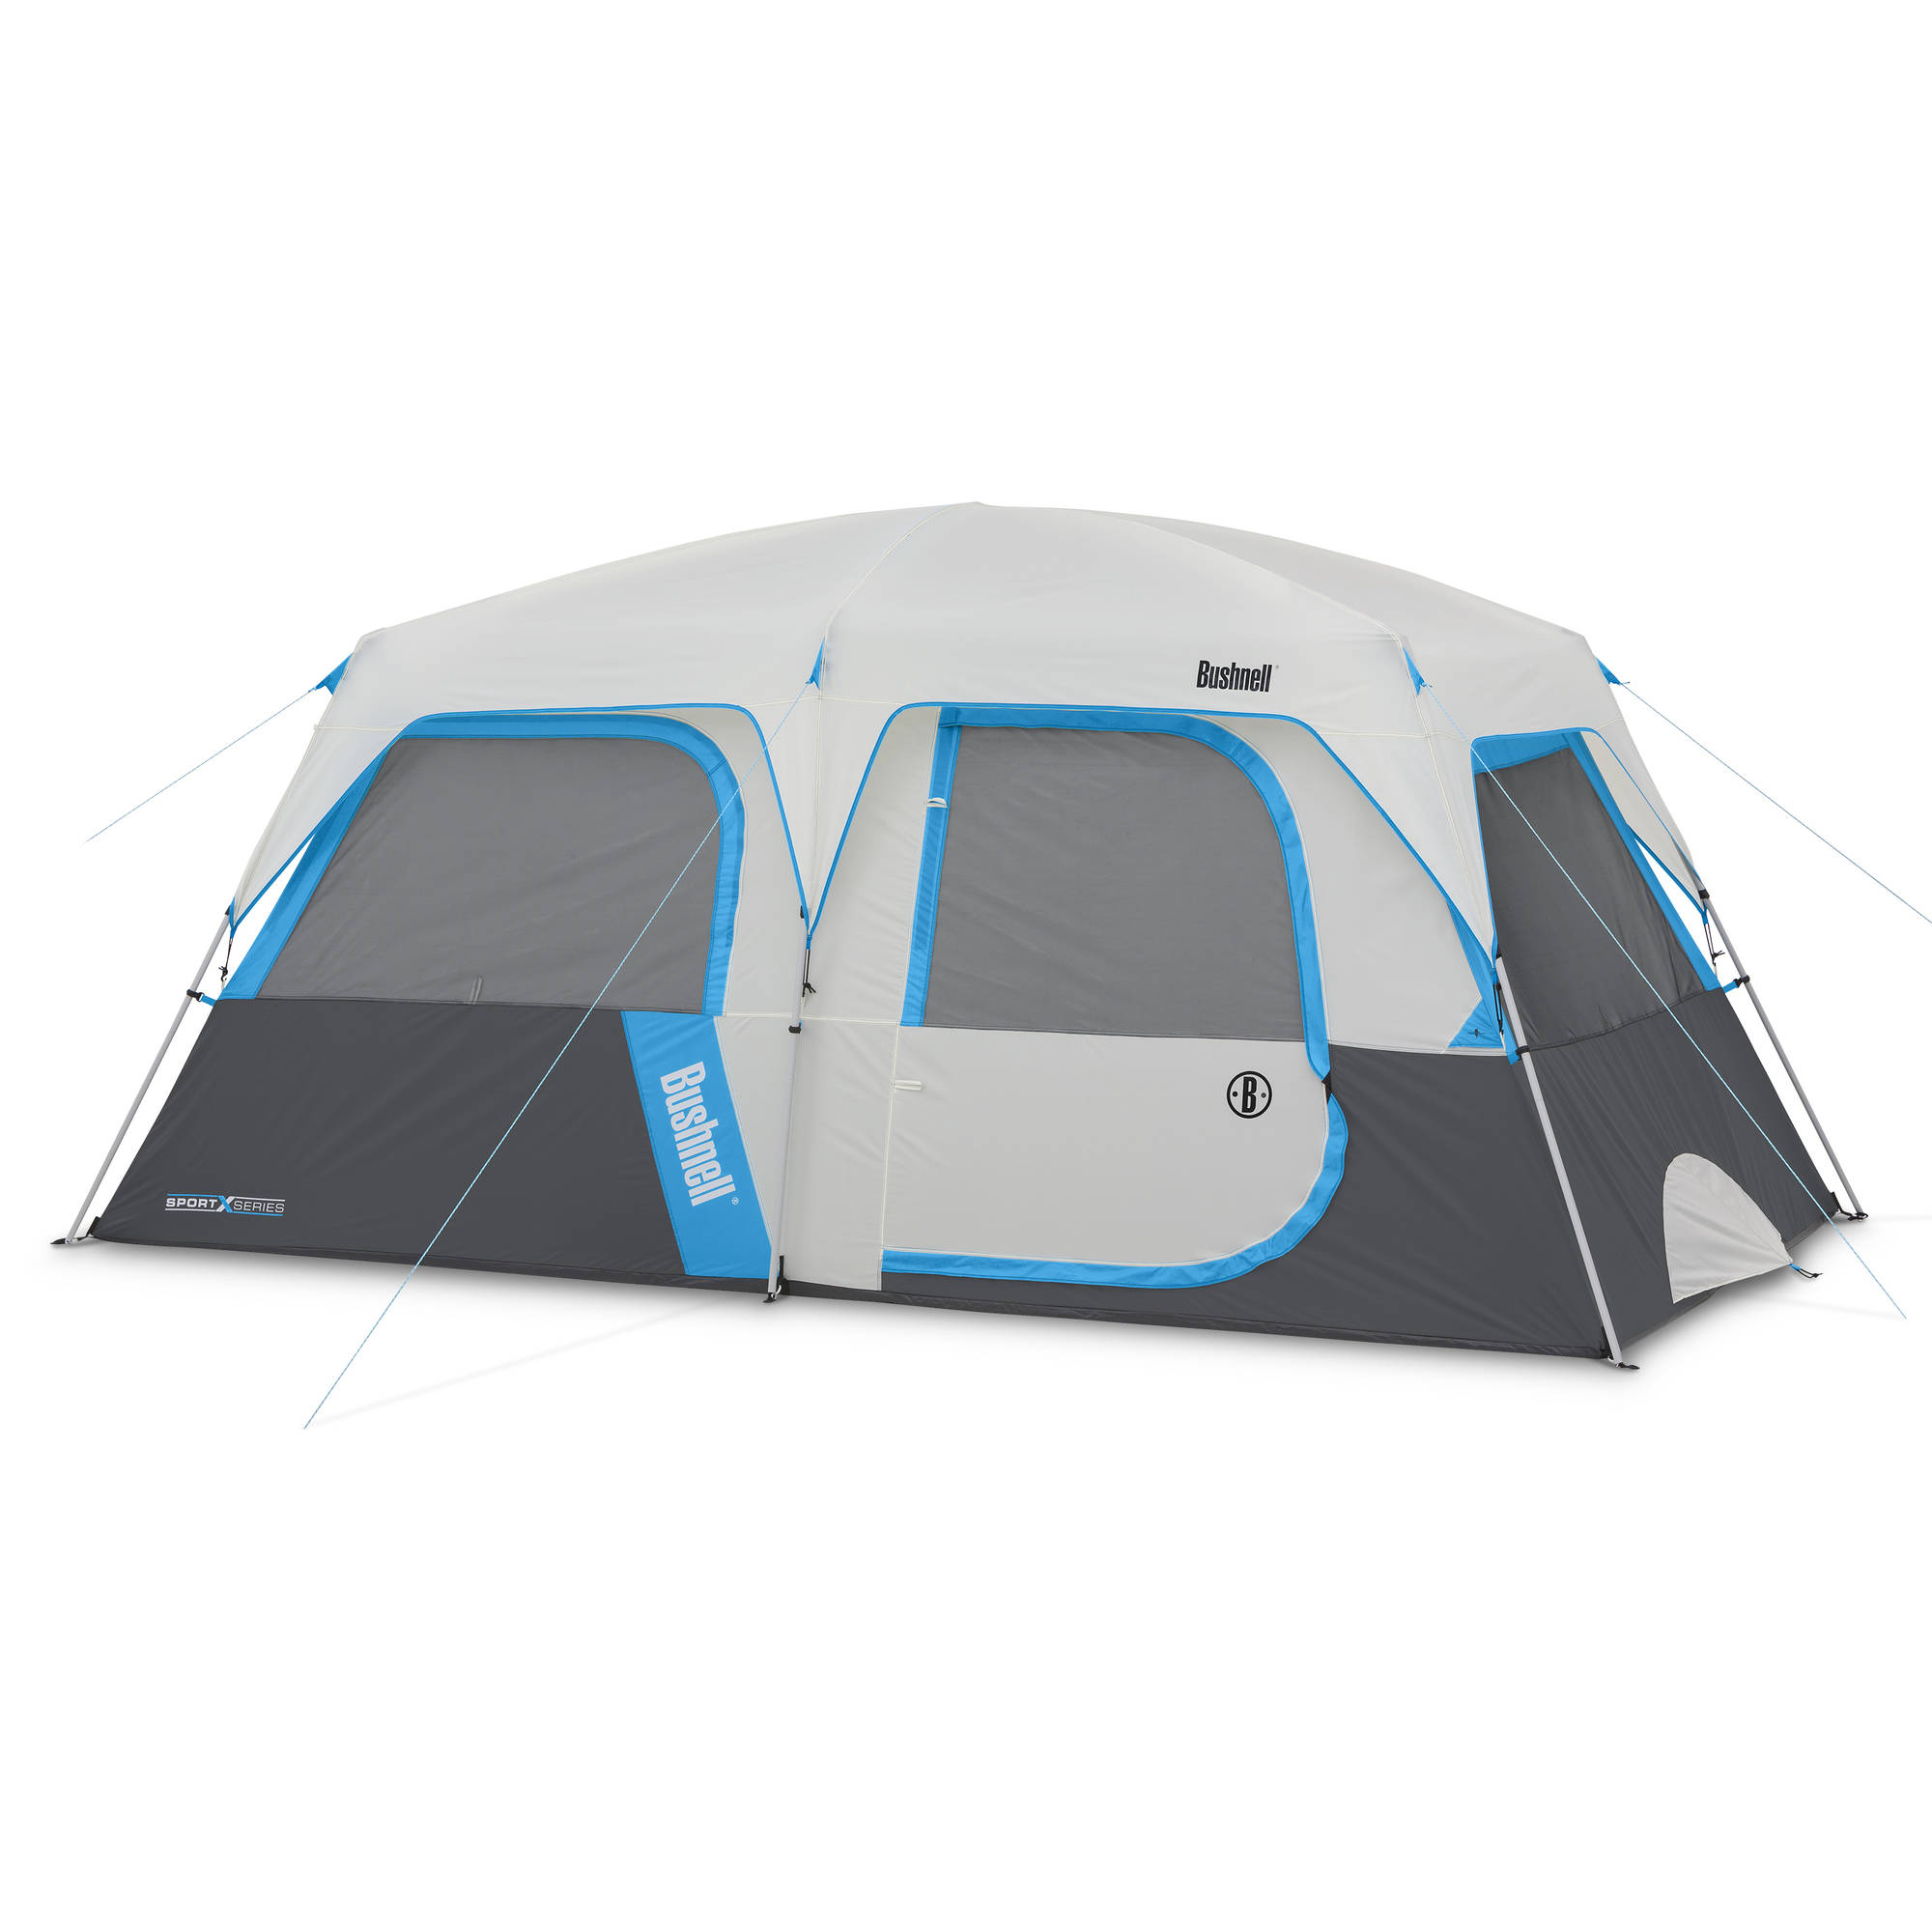 Bushnell Sport Series 14' x 8' Cabin Tent, Sleeps 8 by Campvalley Global Limited